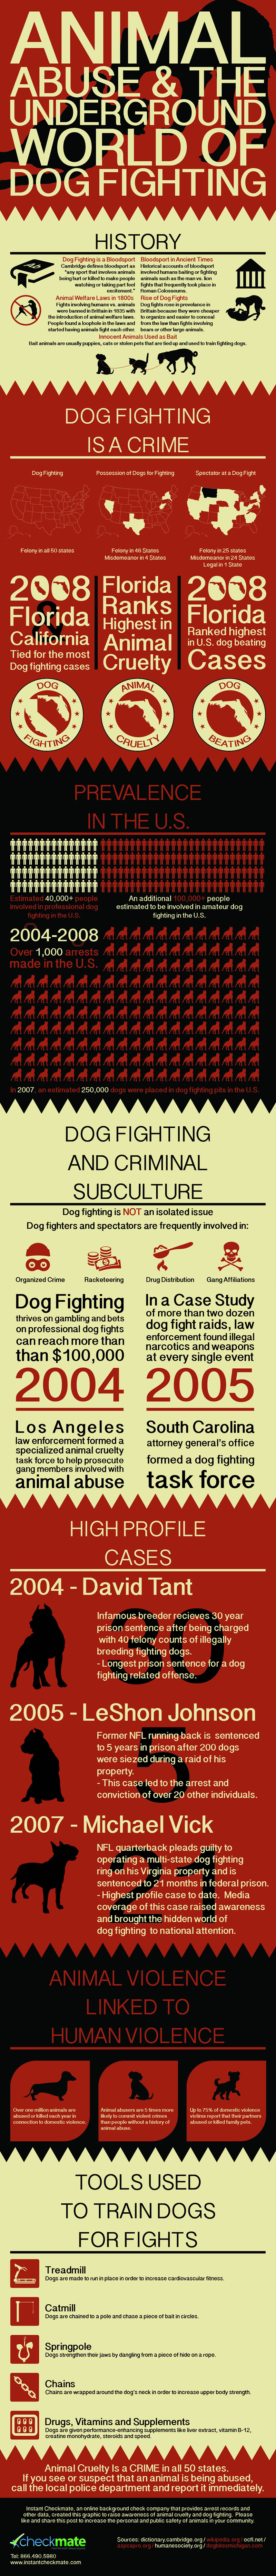 Dog Abuse Facts and Statistics